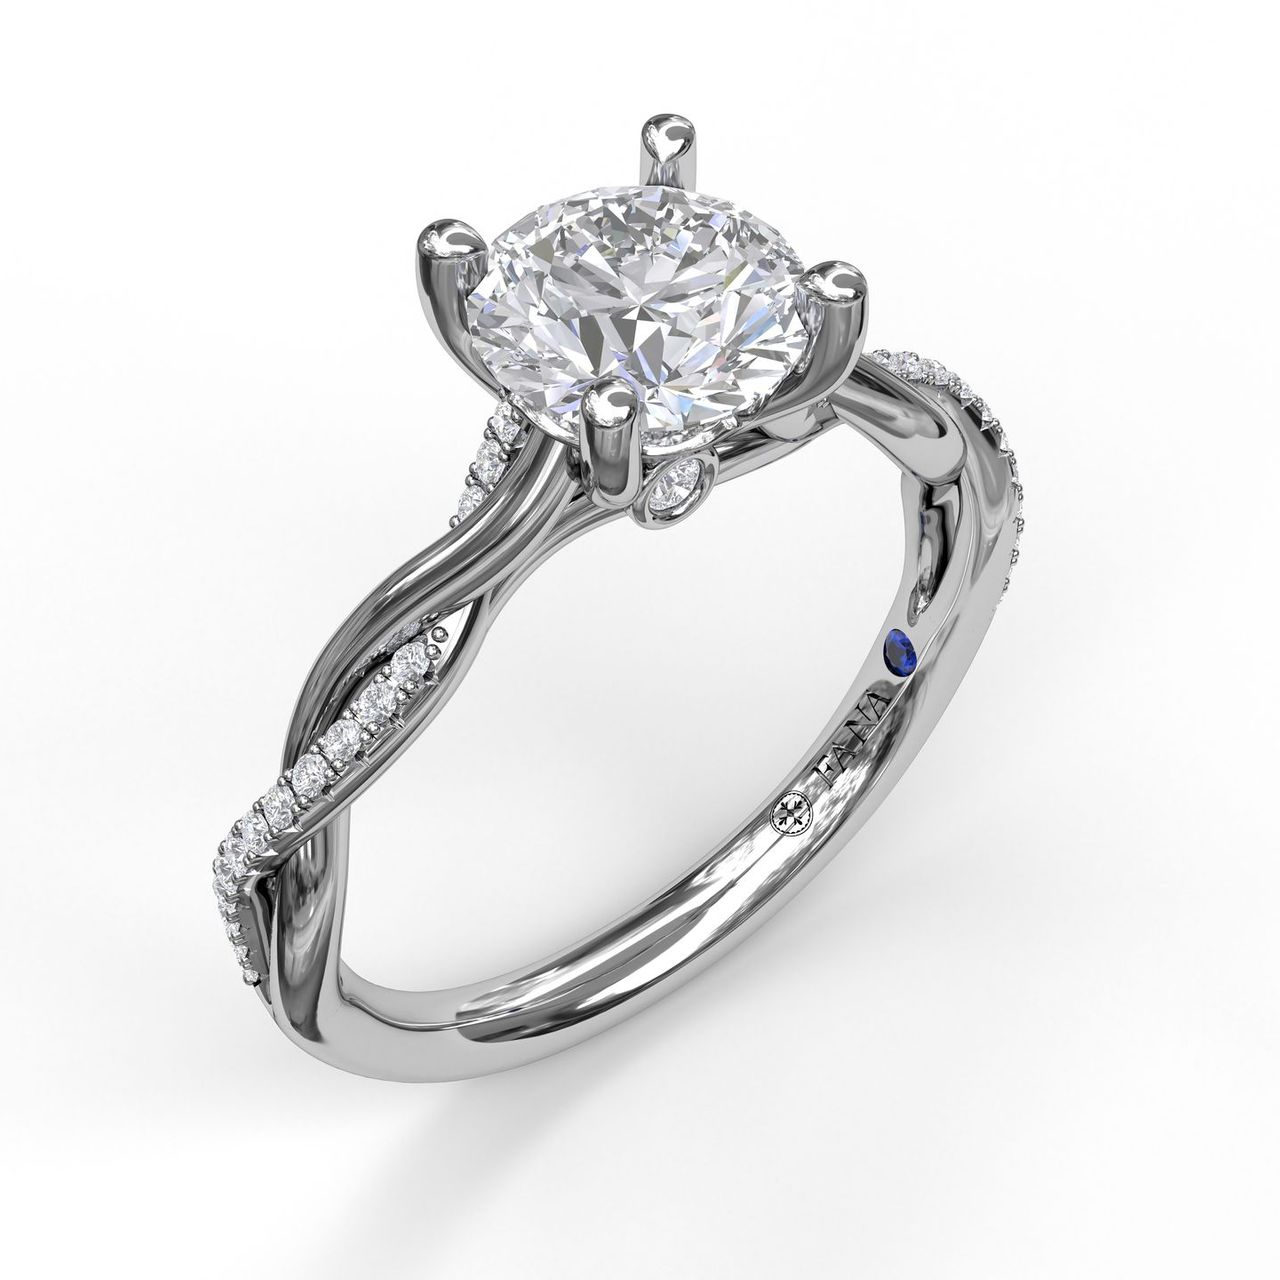 Round Cut Solitaire With Interwoven Band